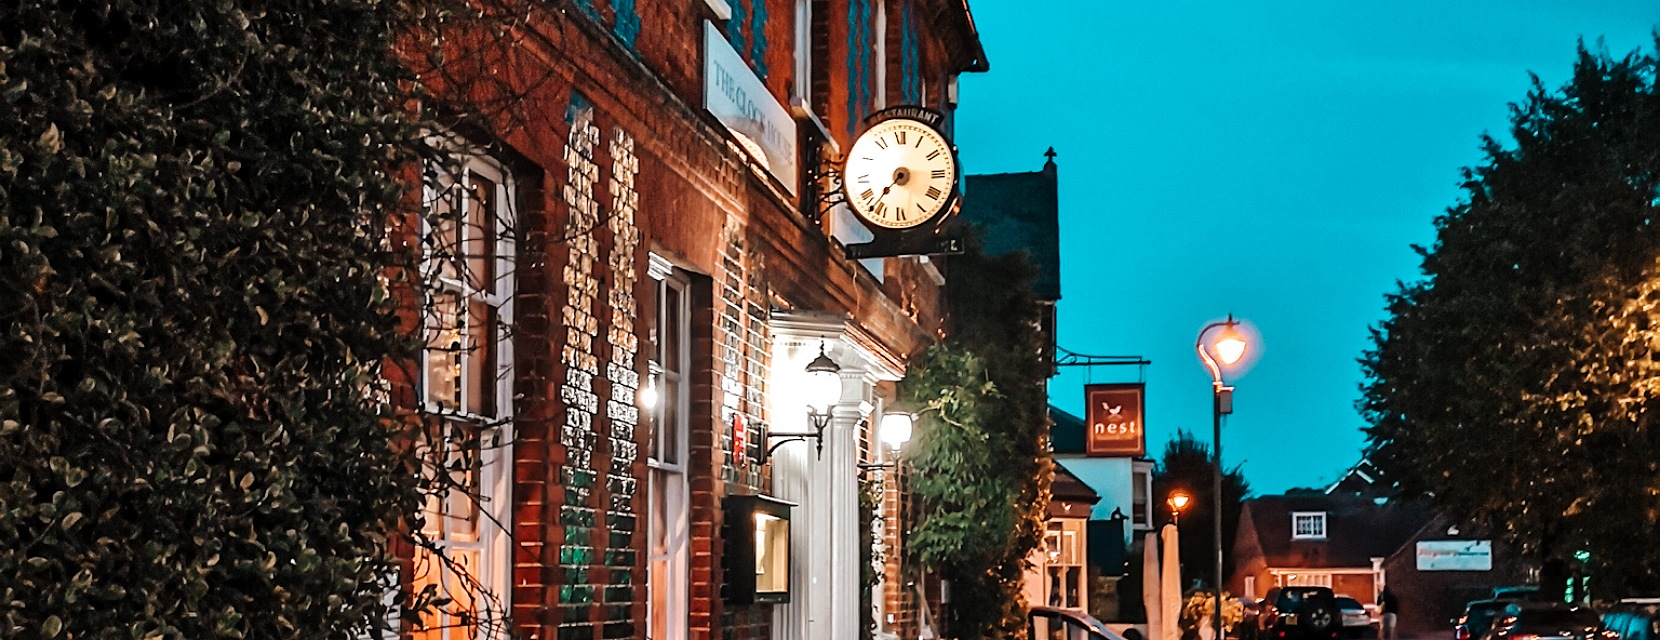 Restaurant recommendation: The Clock House, romantic fine dining in Surrey 80